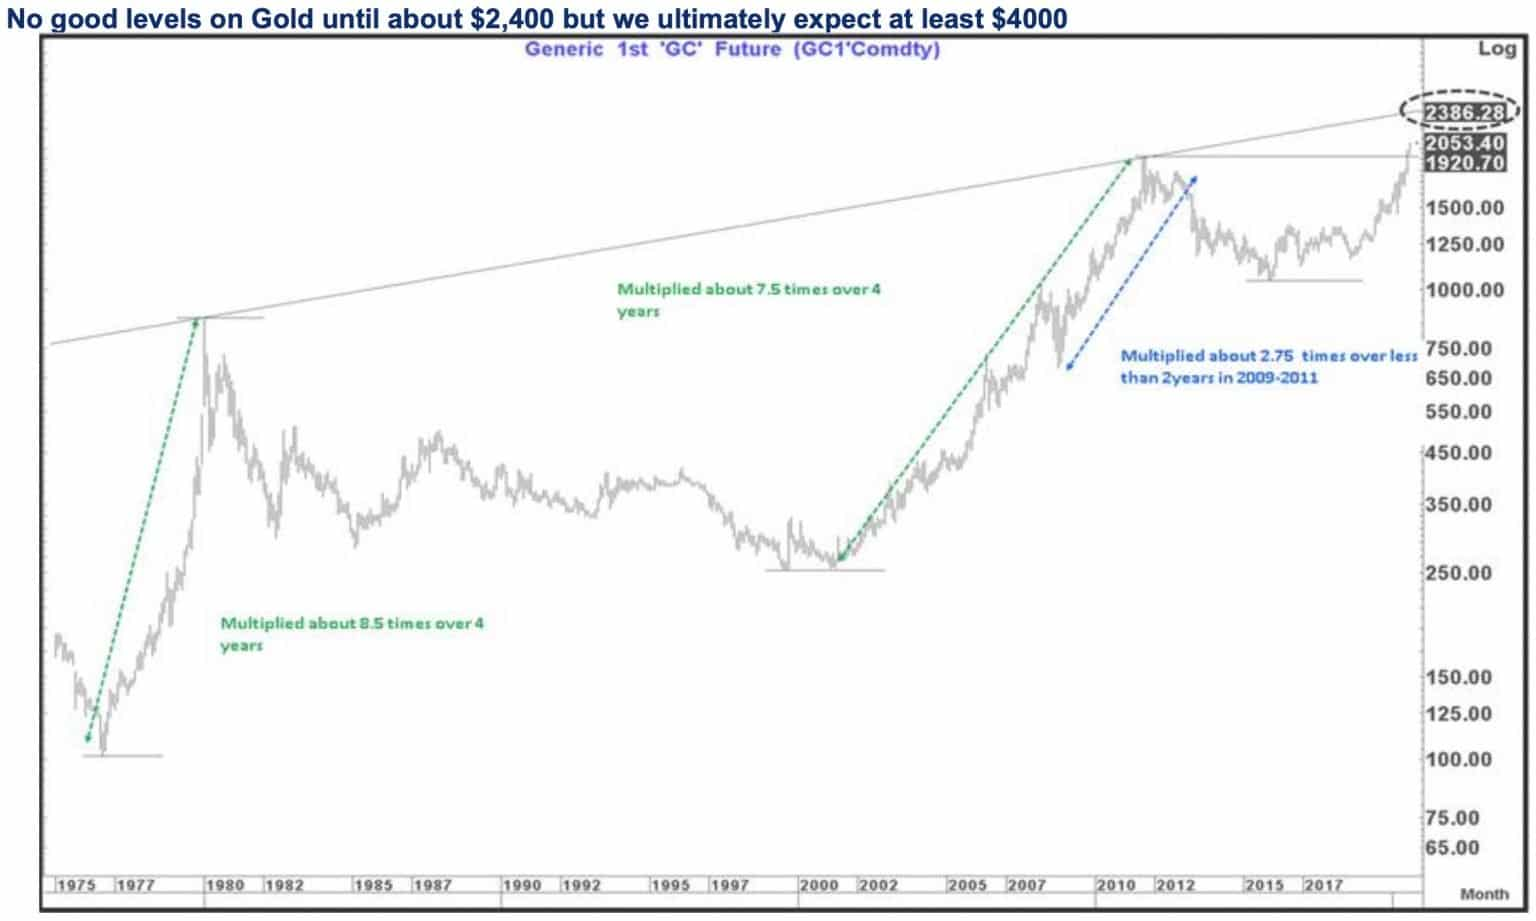 tom-fitzpatrick-gold-headed-to-2400-dollars-short-term